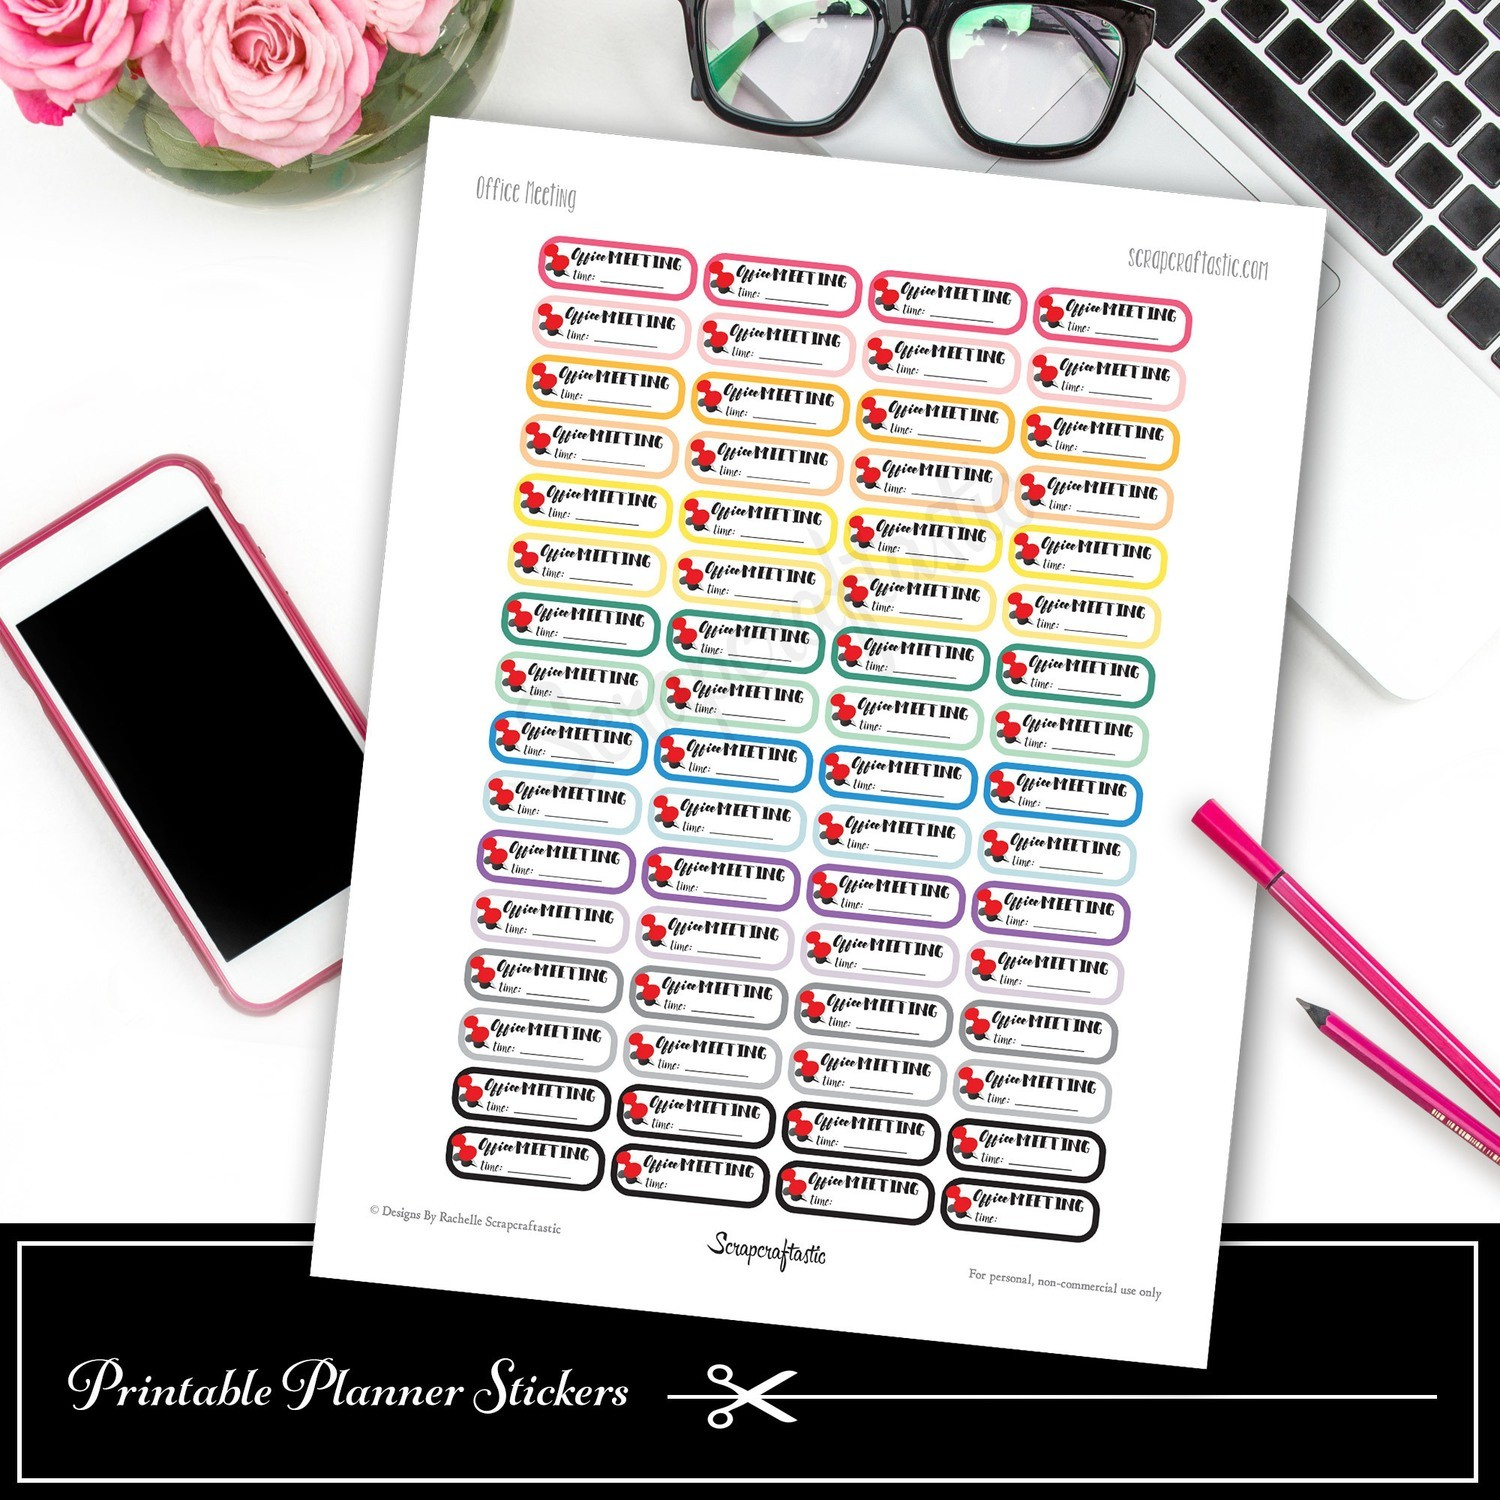 Office Meeting Printable Planner Stickers - Quarter Box